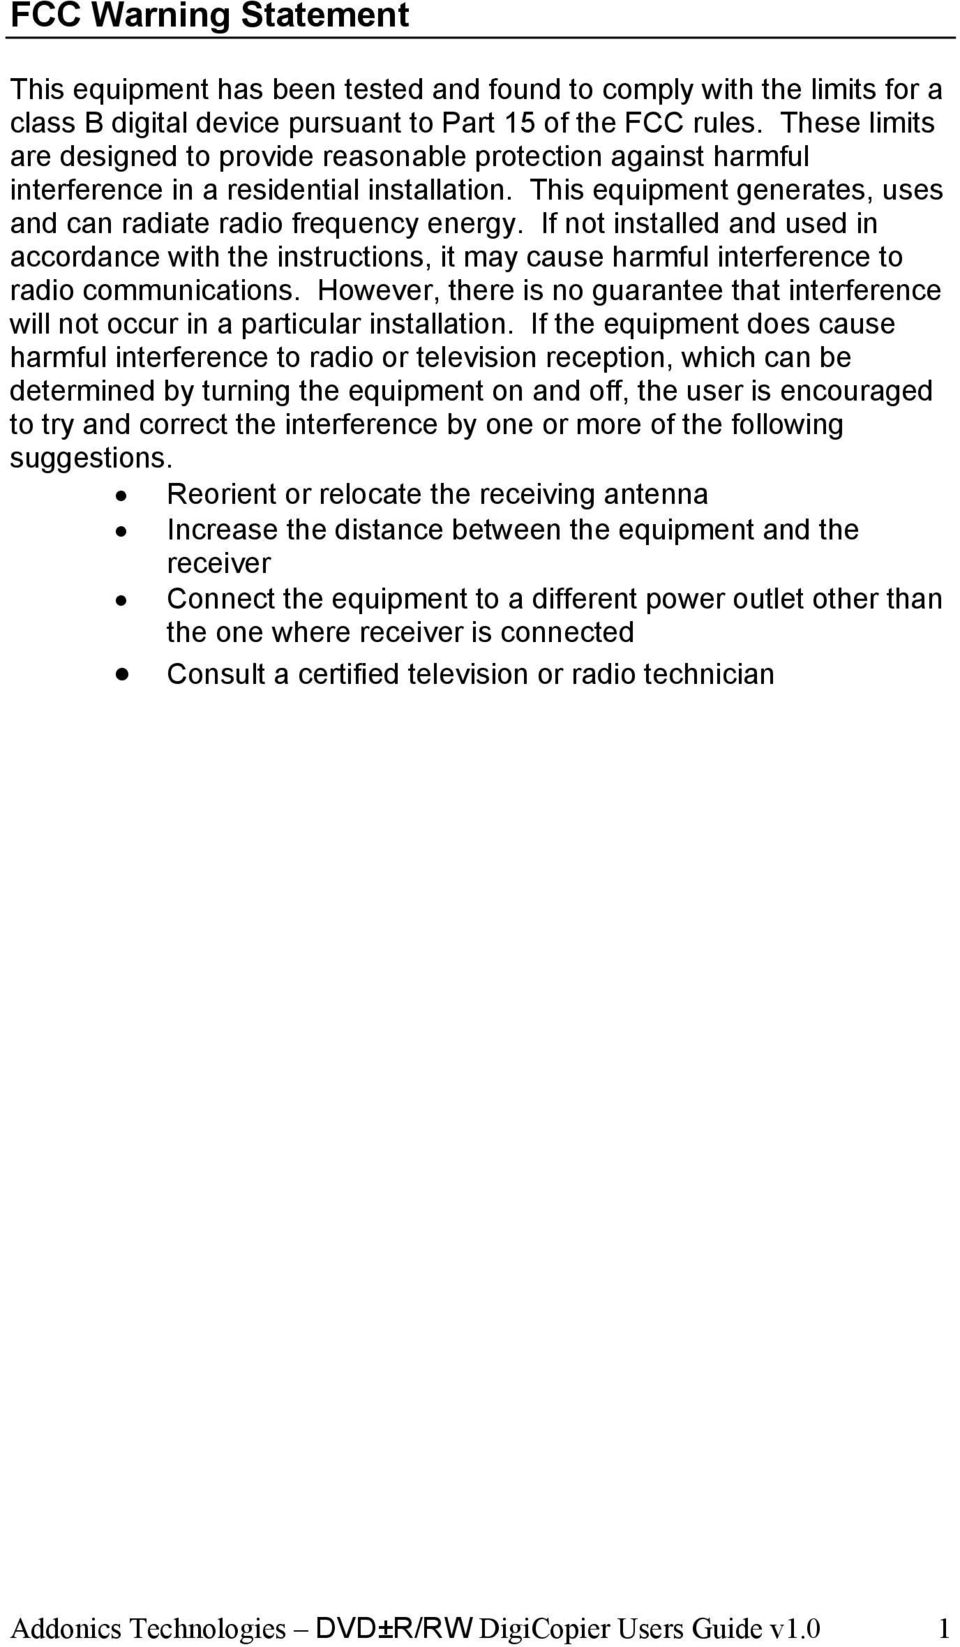 If not installed and used in accordance with the instructions, it may cause harmful interference to radio communications.